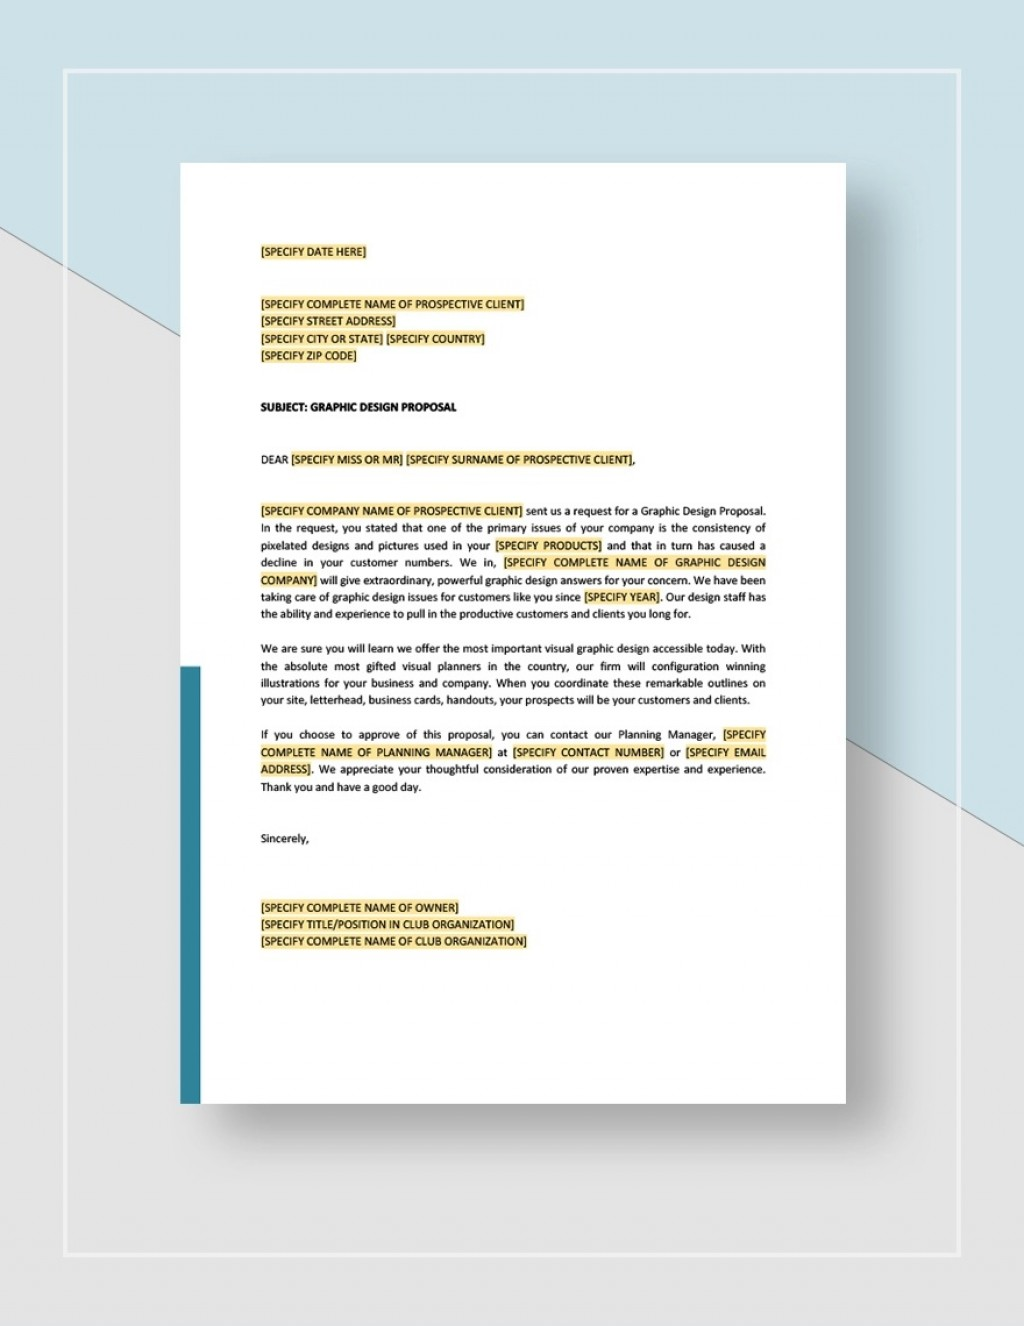 Graphic Design Proposal Template Sample Idea Jpg  Free Doc PdfLarge